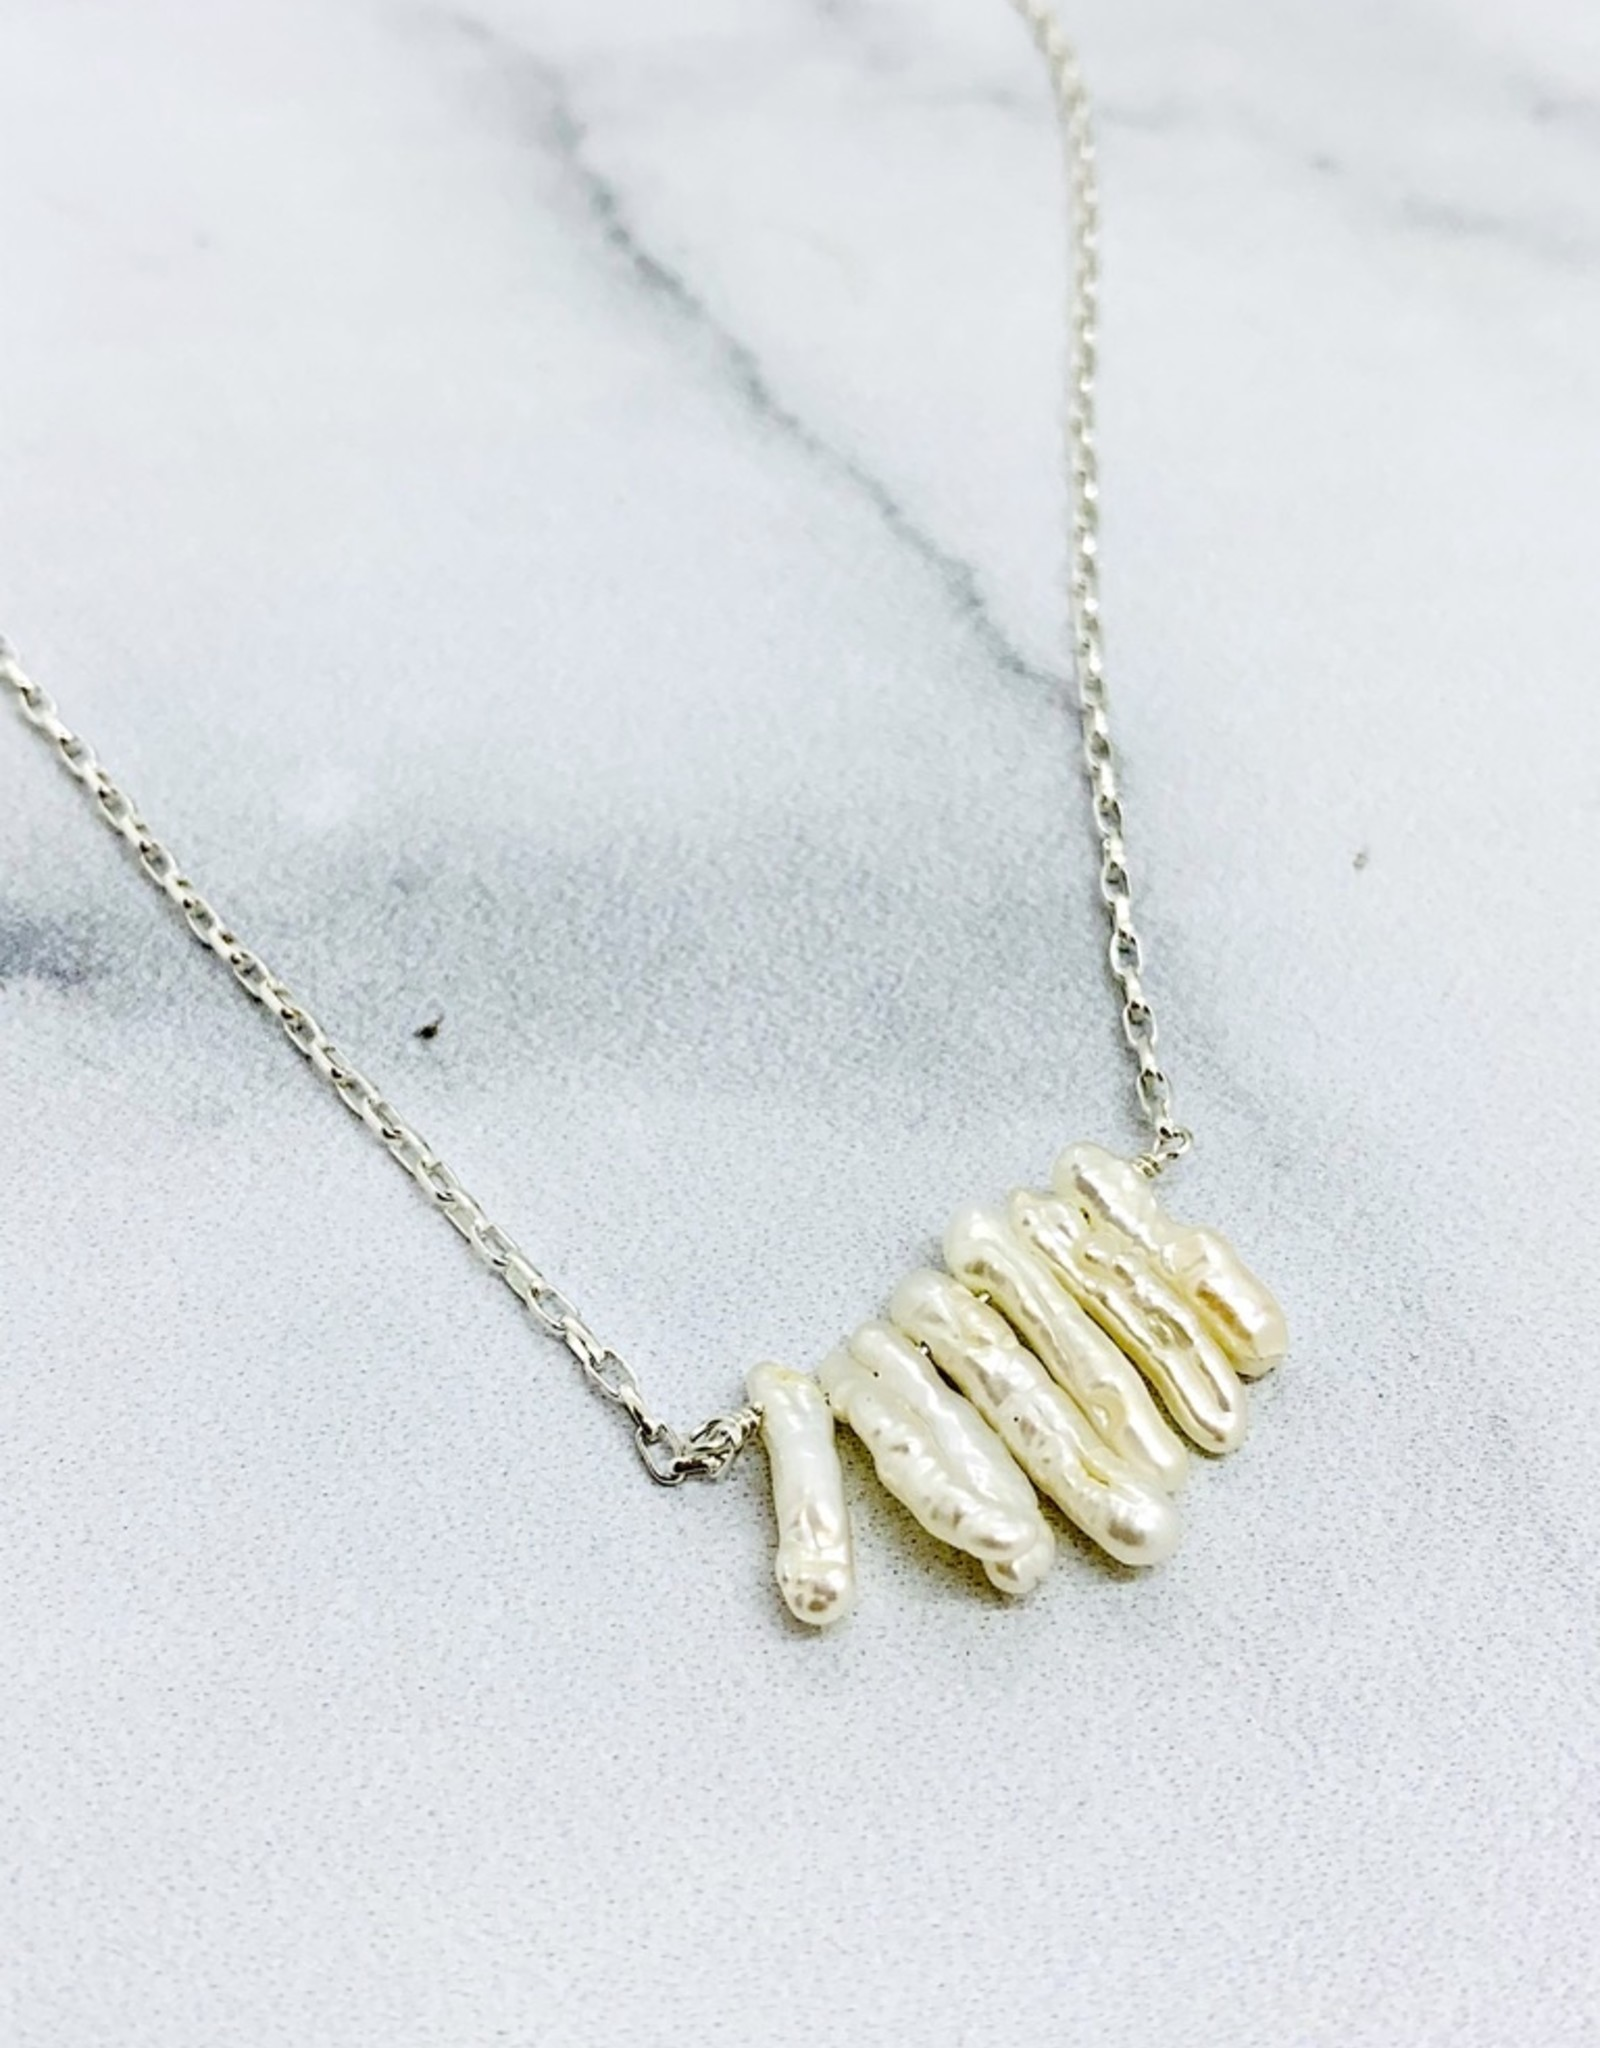 Handmade Silver Necklace with 7 white stick pearls